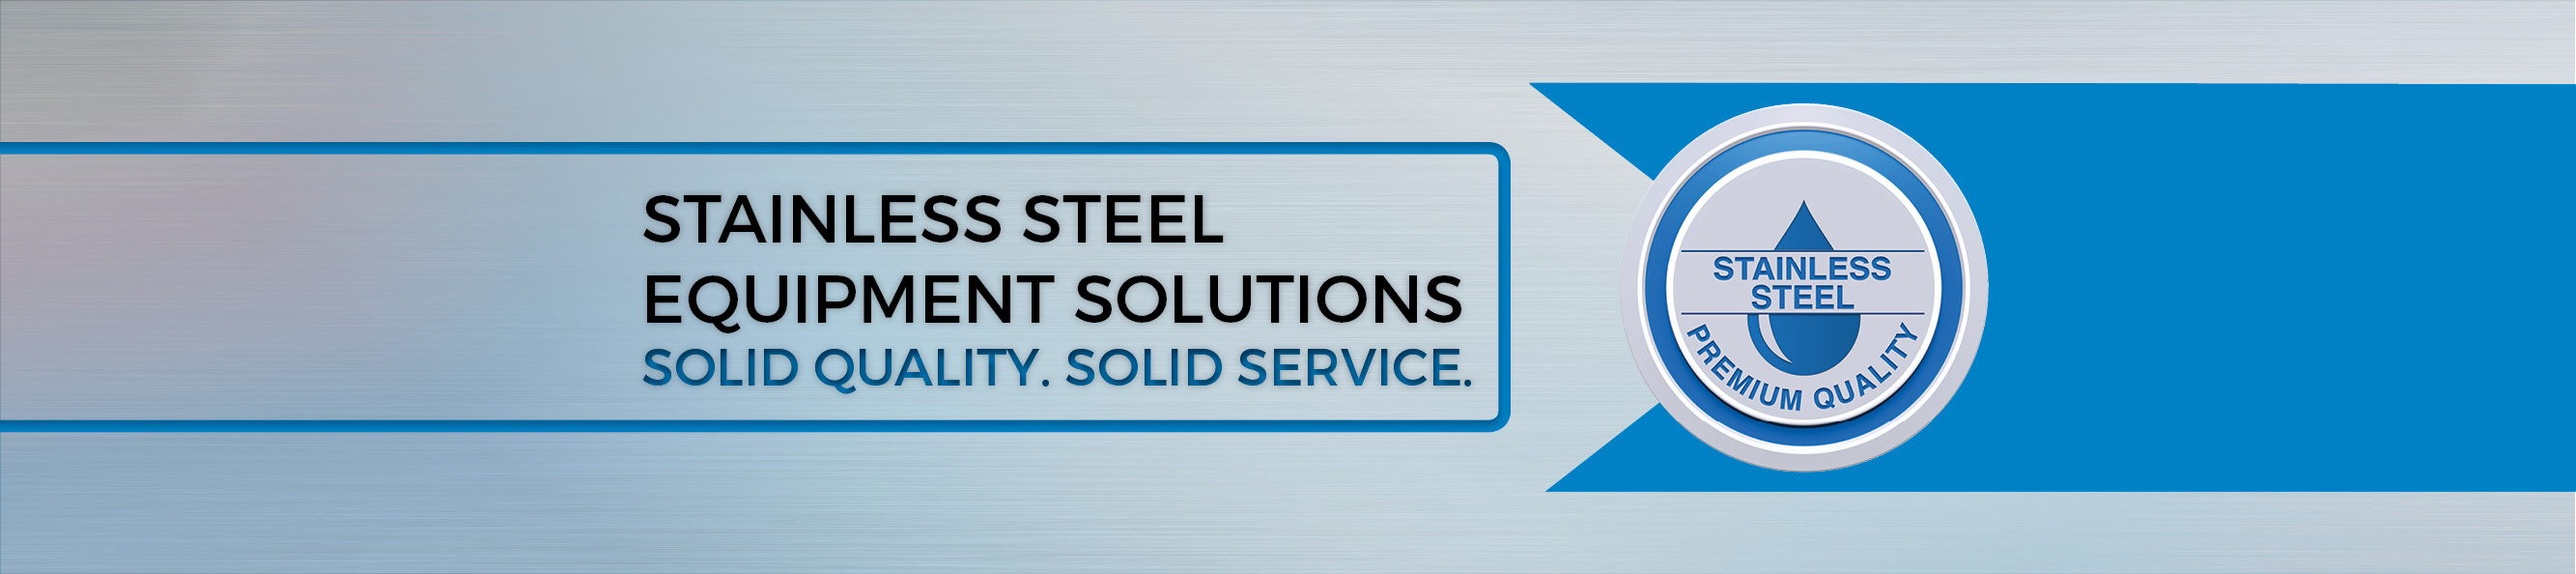 Quality Stainless Steel Equipment Bk Resources